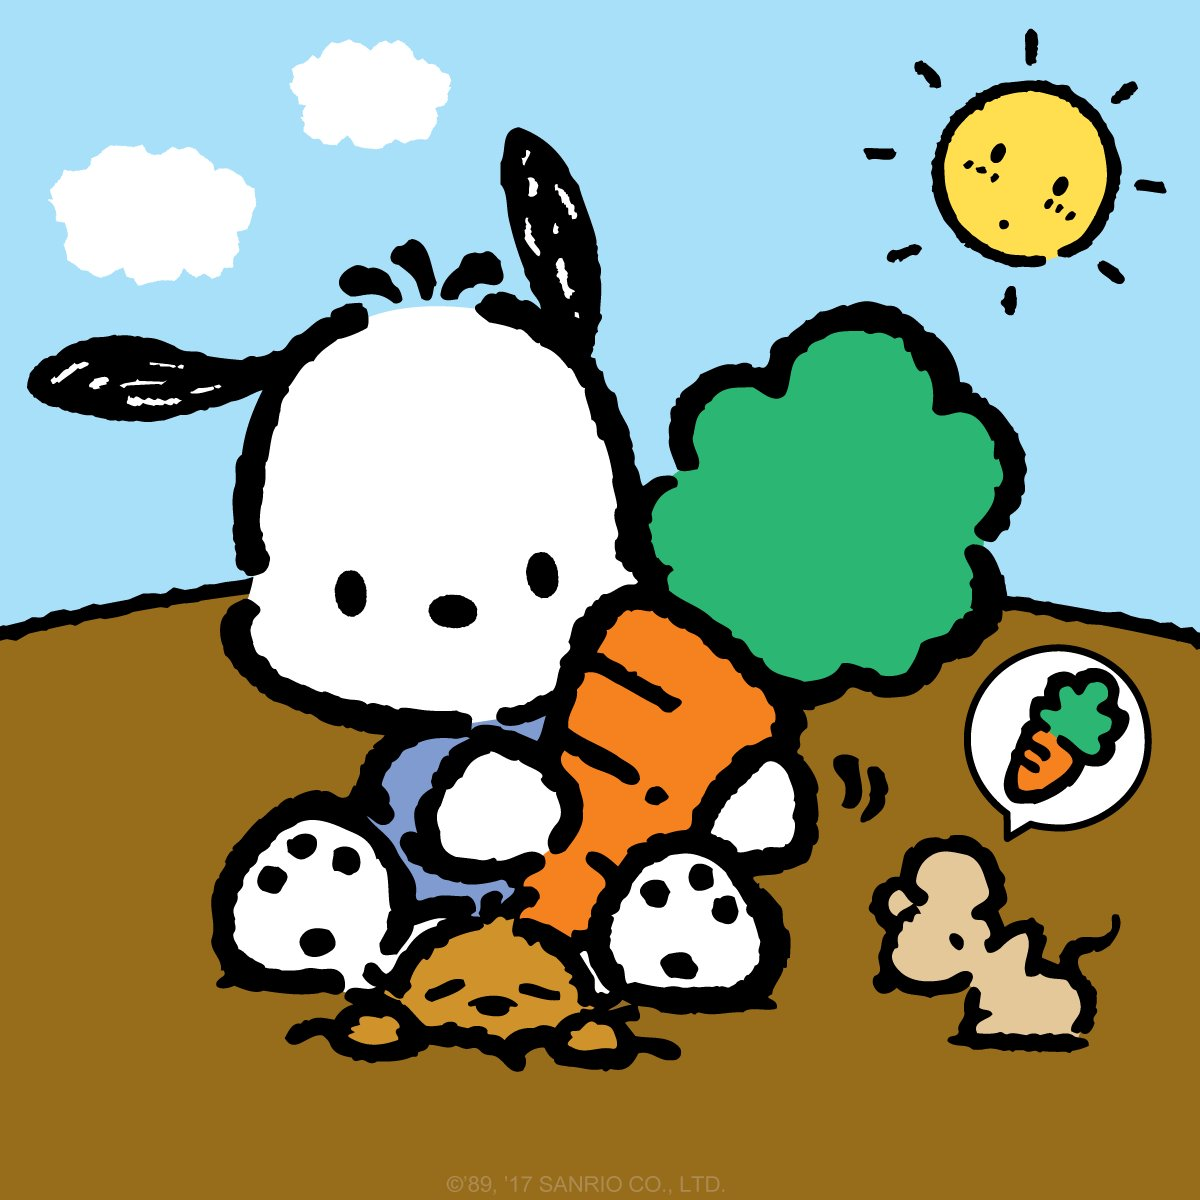 sanrio on twitter quotdid you know that pochacco is a